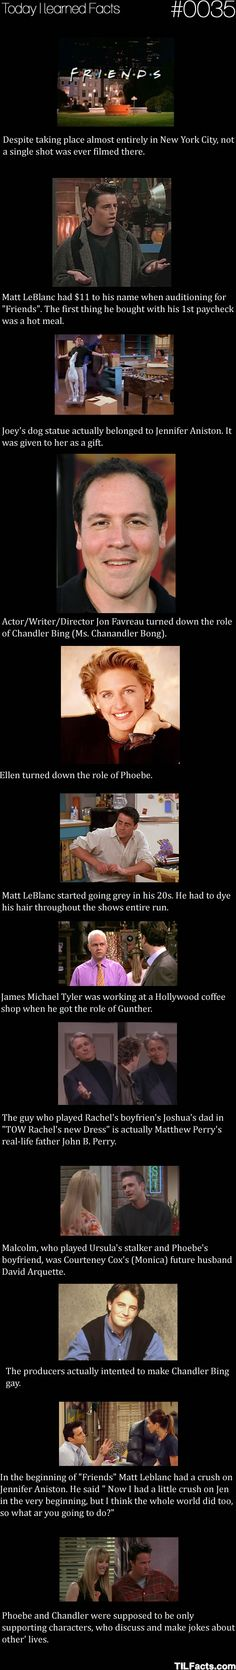 Matt LeBlanc only had 11$ to his name <3 awwww I love all of these!!